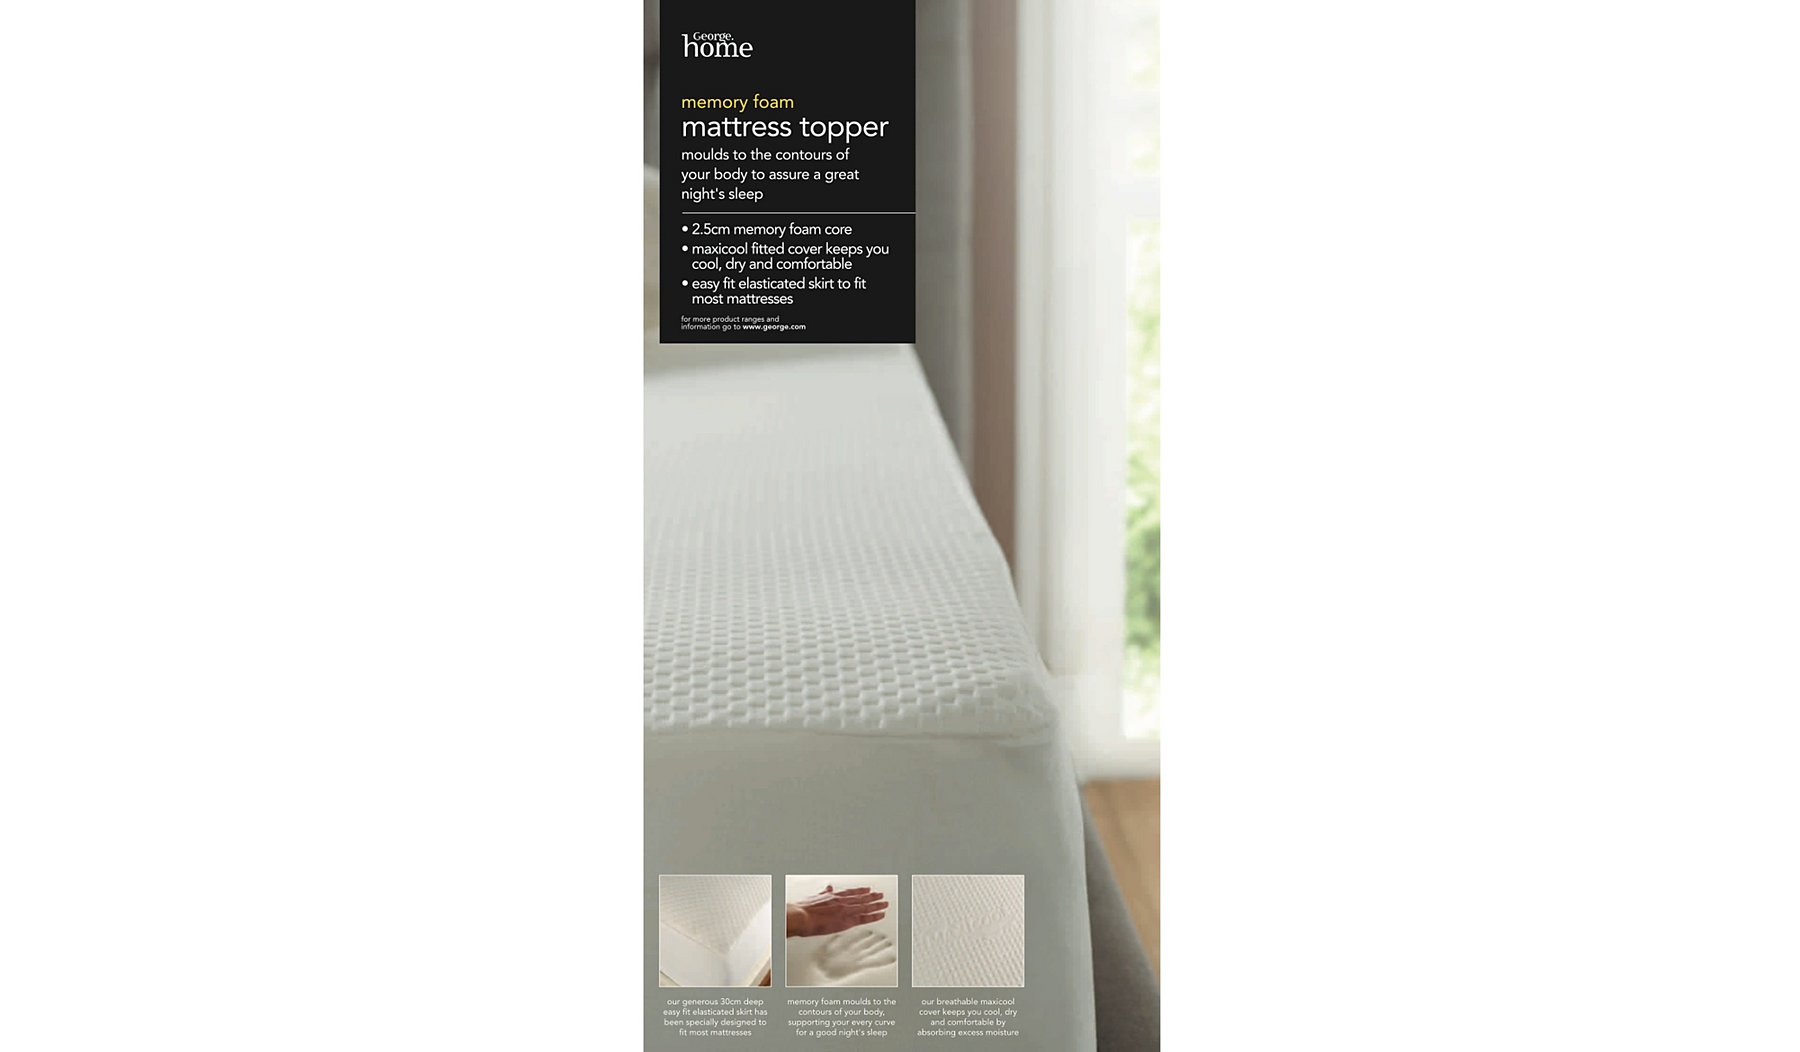 Memory Foam 2 5cm Mattress Topper Sheets Pillowcases George At Asda